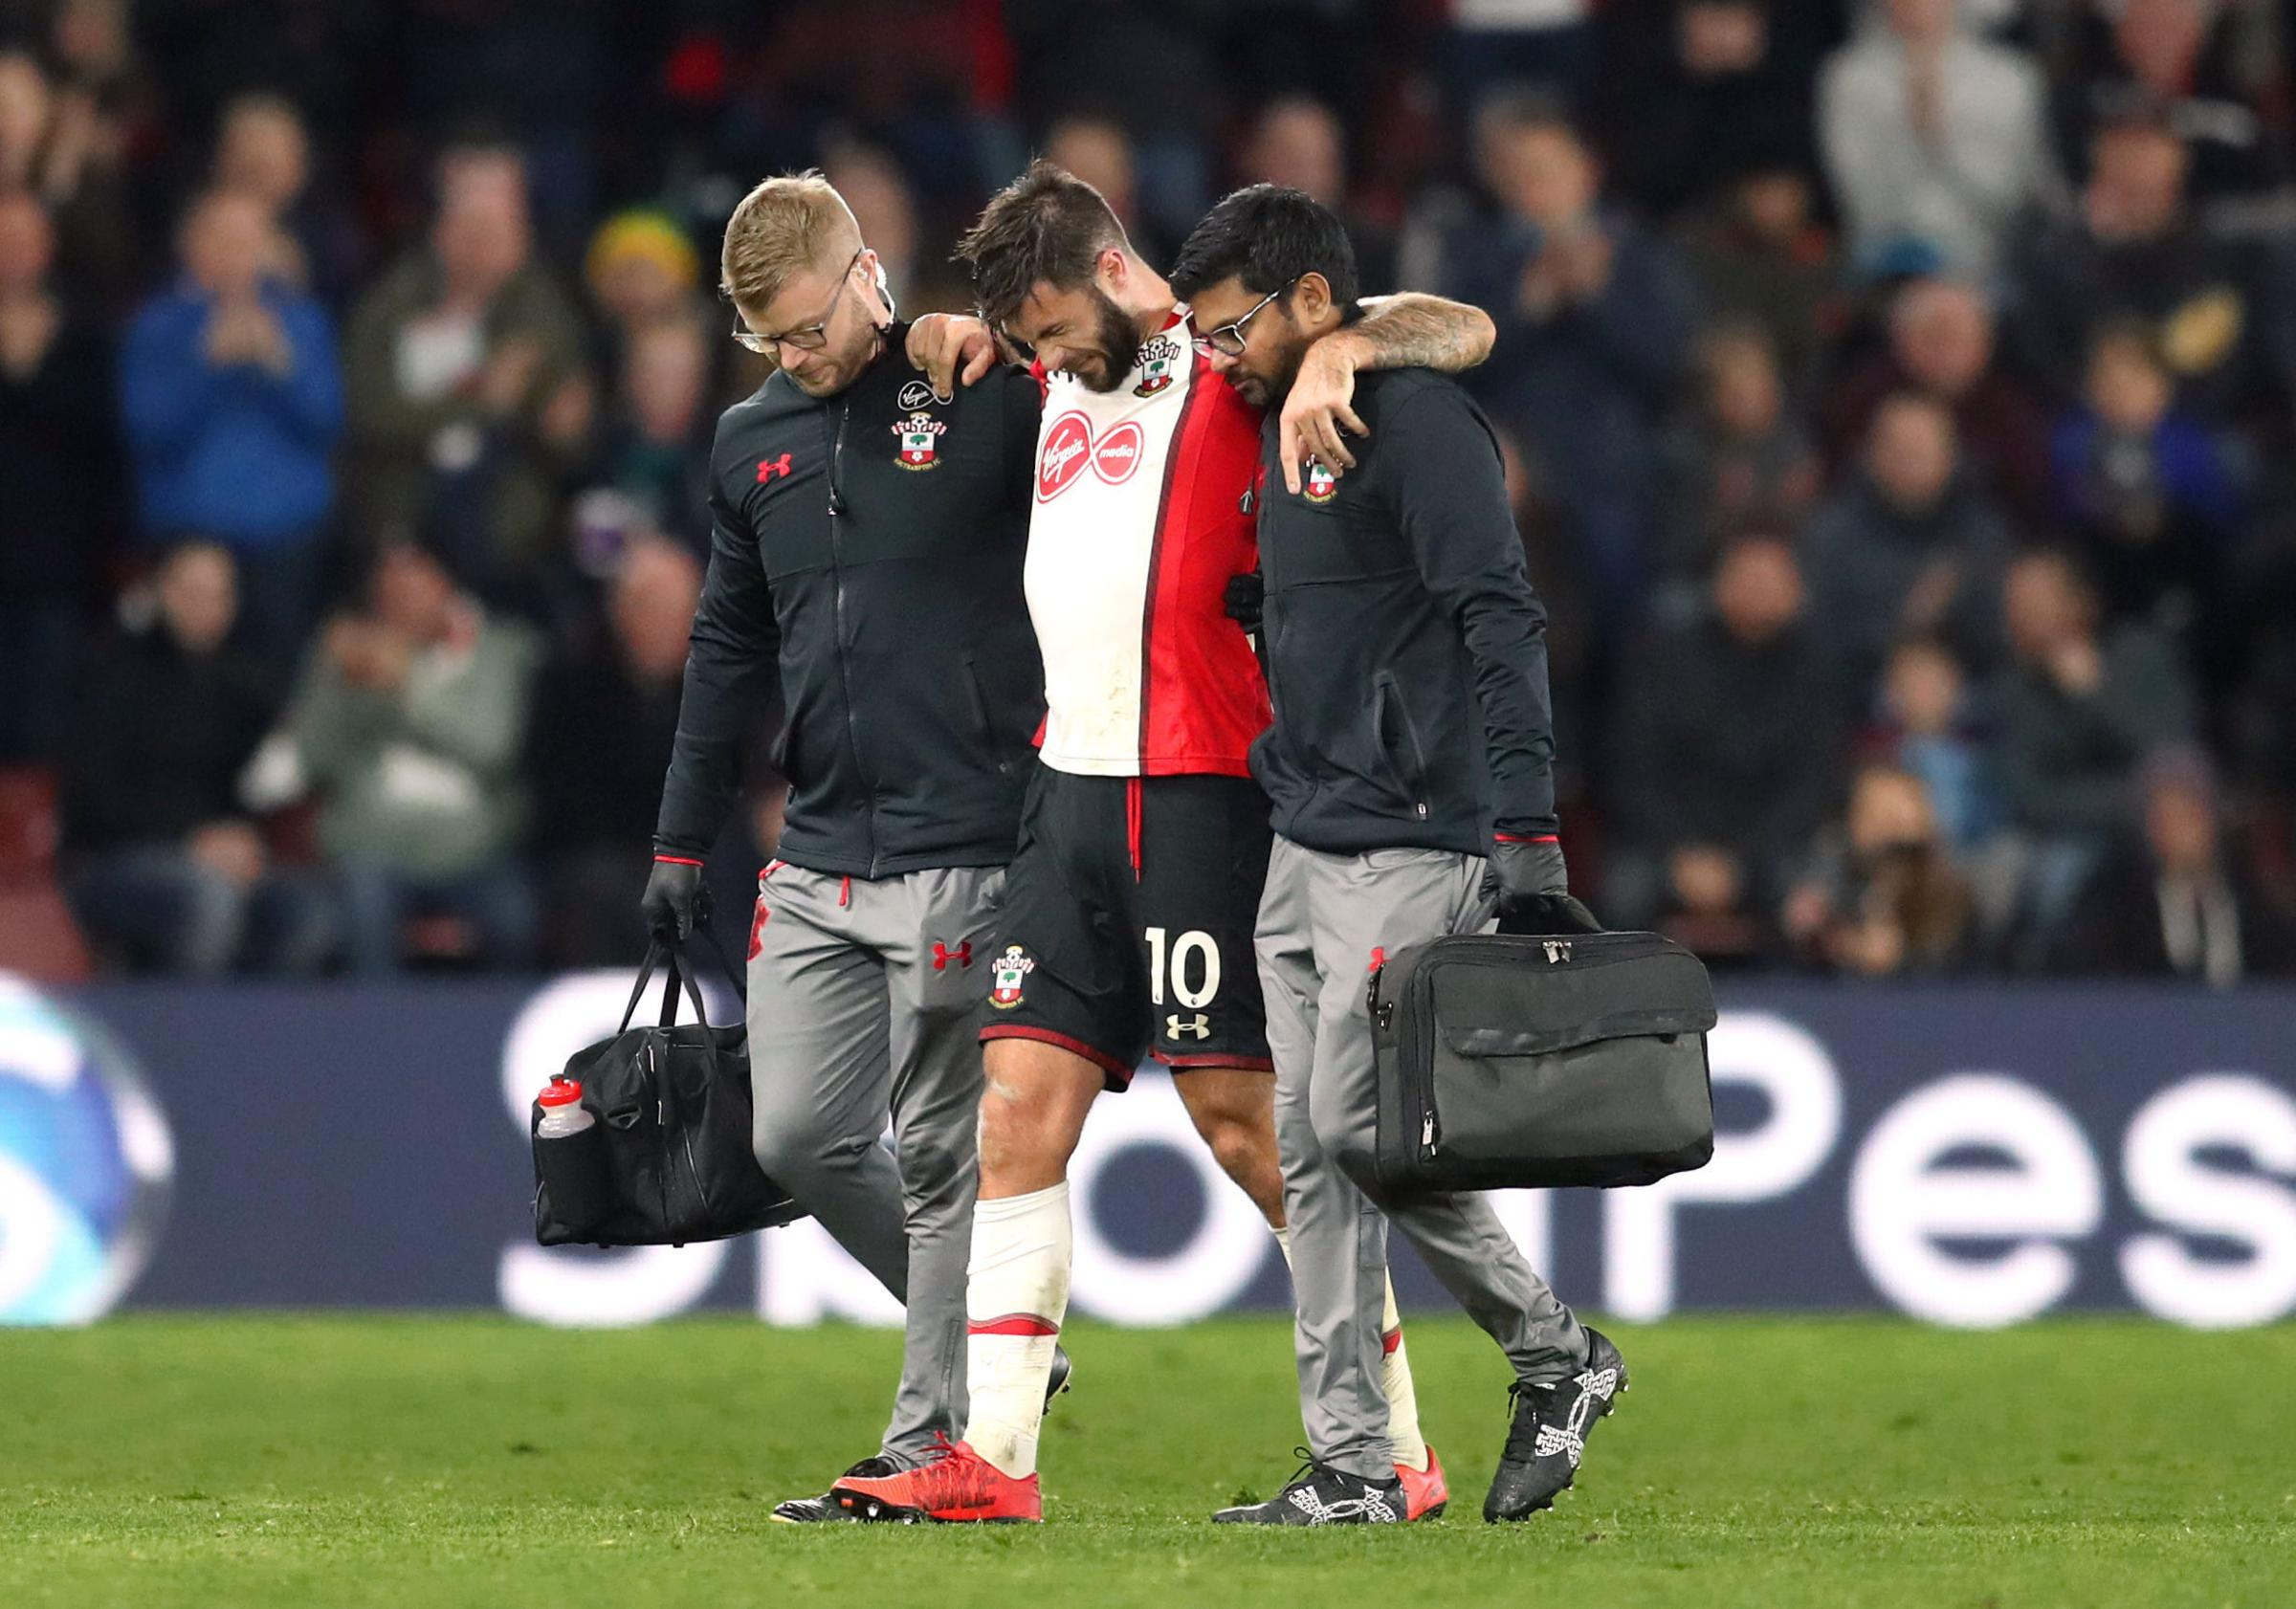 Charlie Austin limps off injured